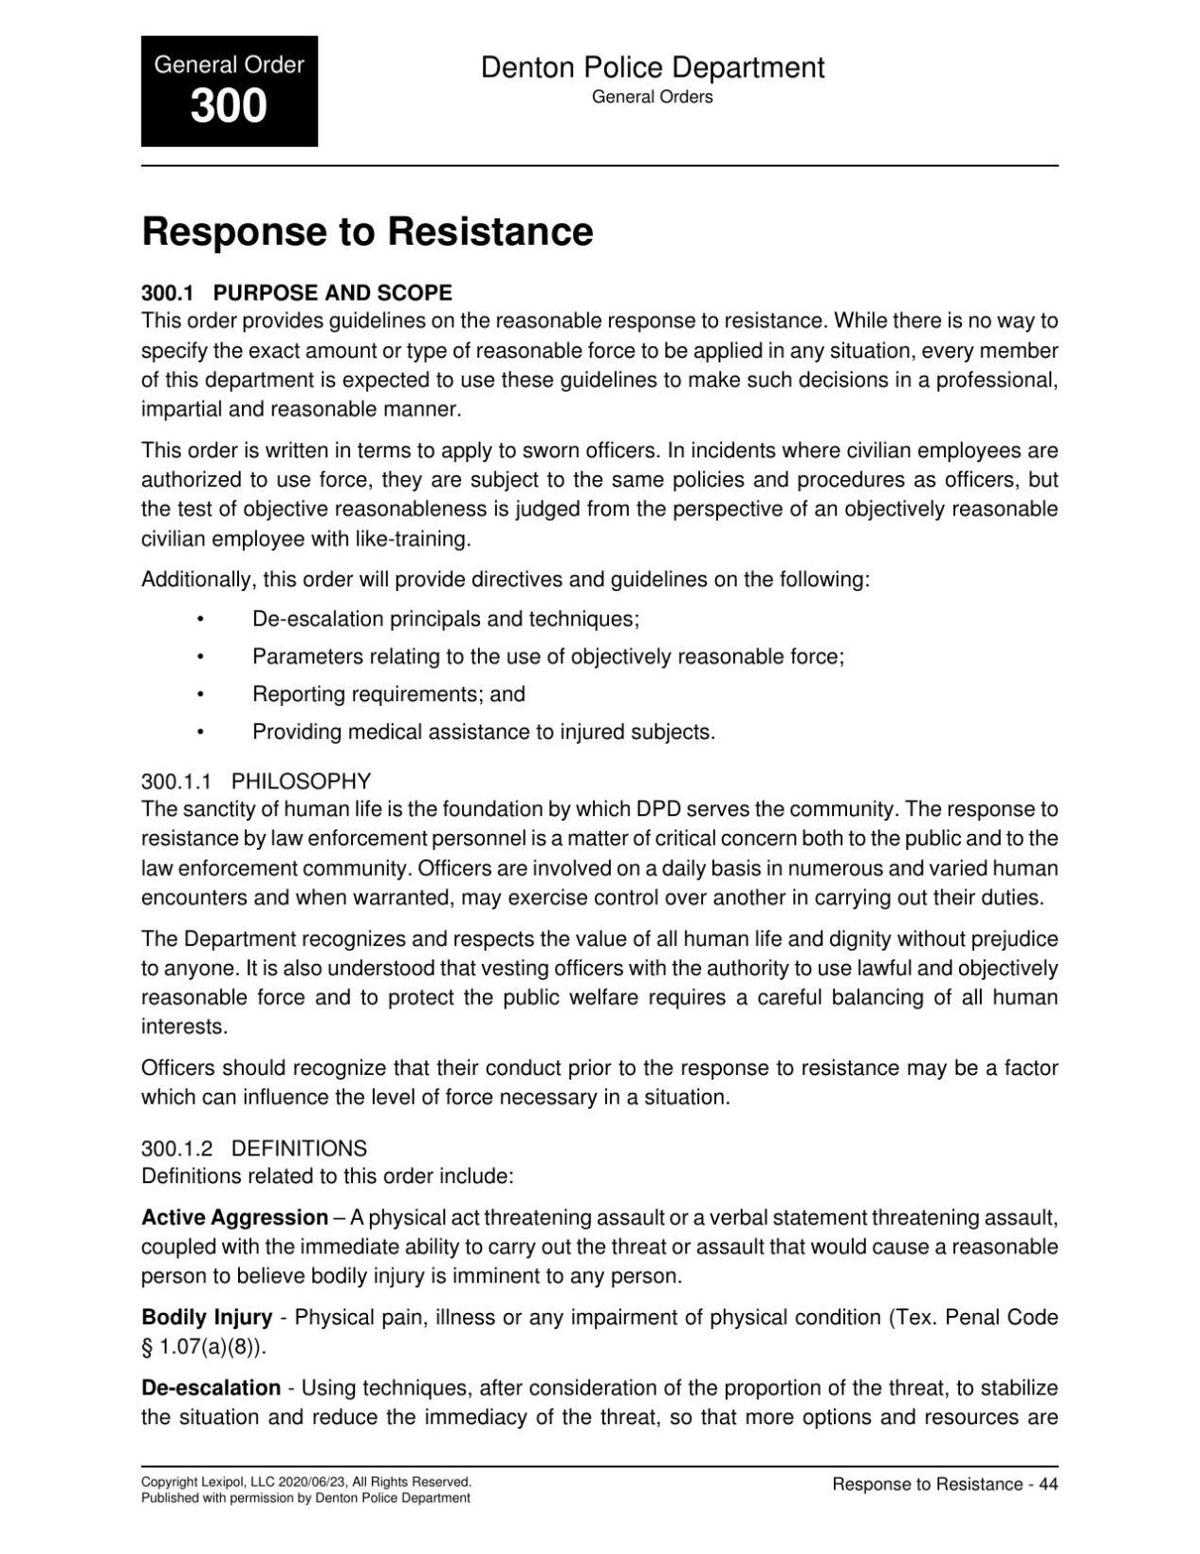 Denton Police Department's Response to Resistance Policies